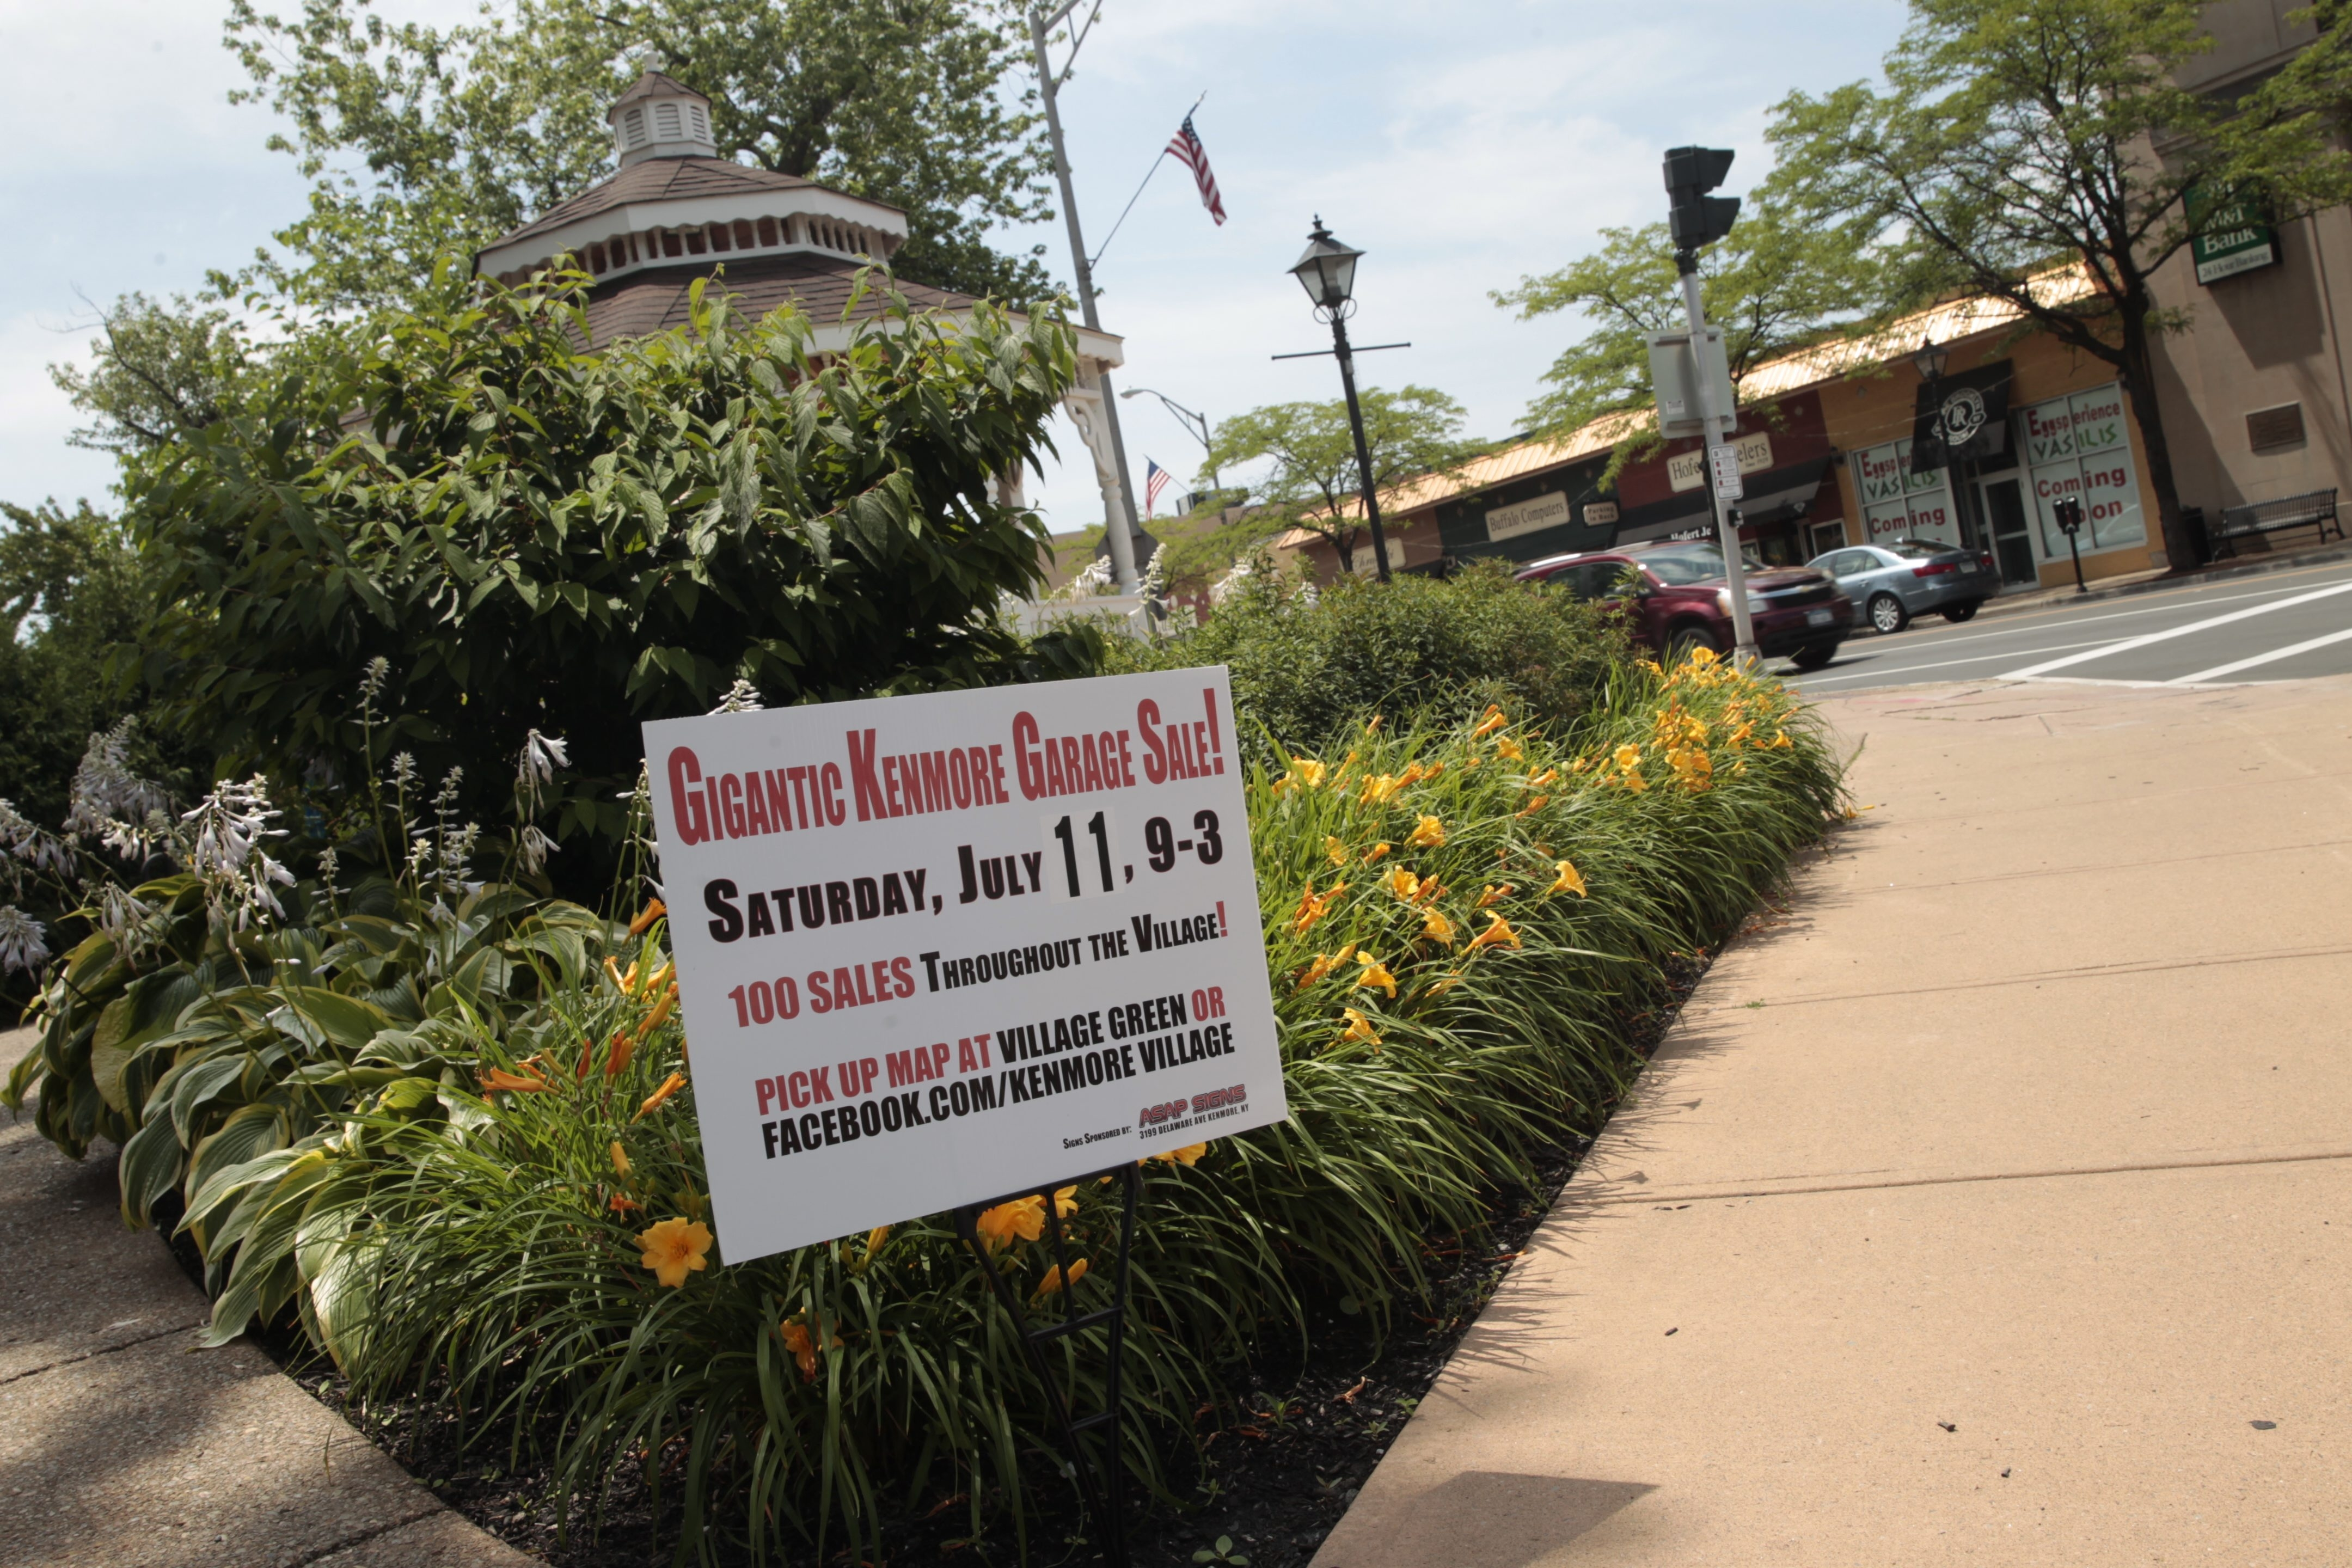 The Kenmore Village Improvement Society is holding its second Gigantic Kenmore Garage Sale on Saturday. It will include a treasure hunt with clues and a video booth for people to share their finds.